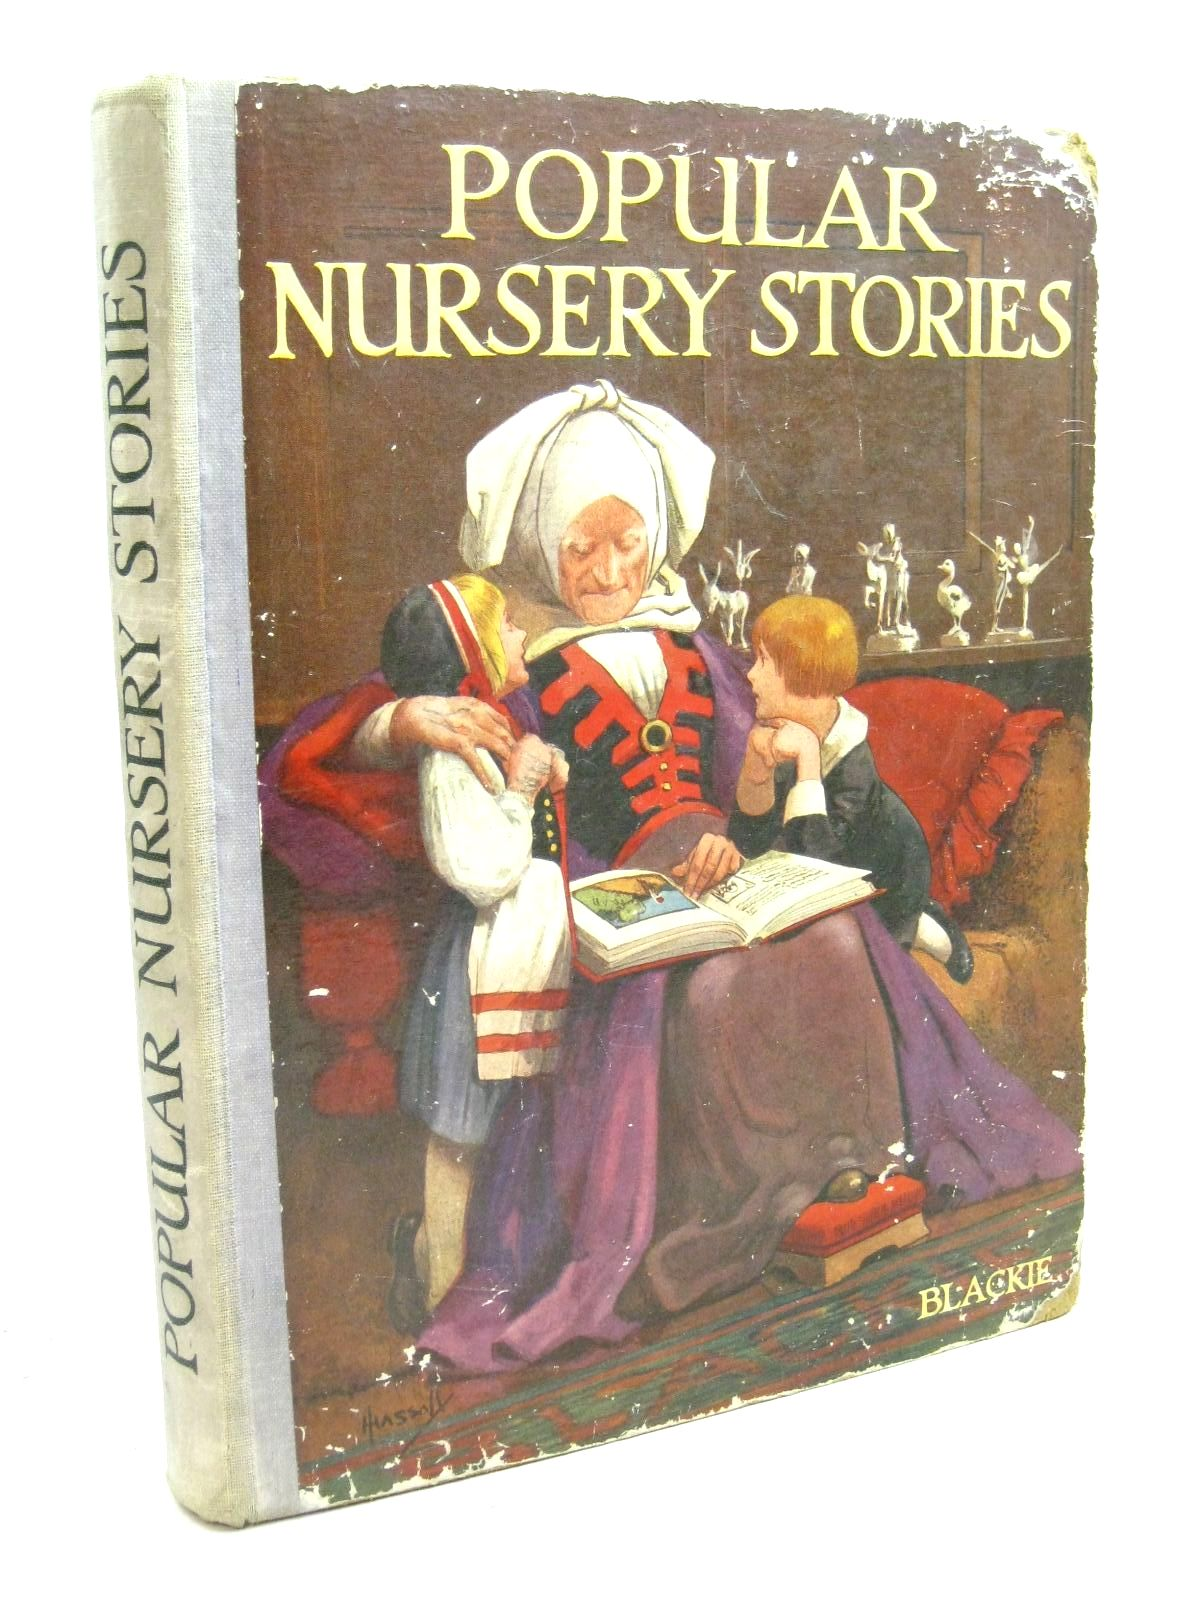 Photo of BLACKIE'S POPULAR NURSERY STORIES illustrated by Hassall, John published by Blackie & Son Ltd. (STOCK CODE: 1505971)  for sale by Stella & Rose's Books